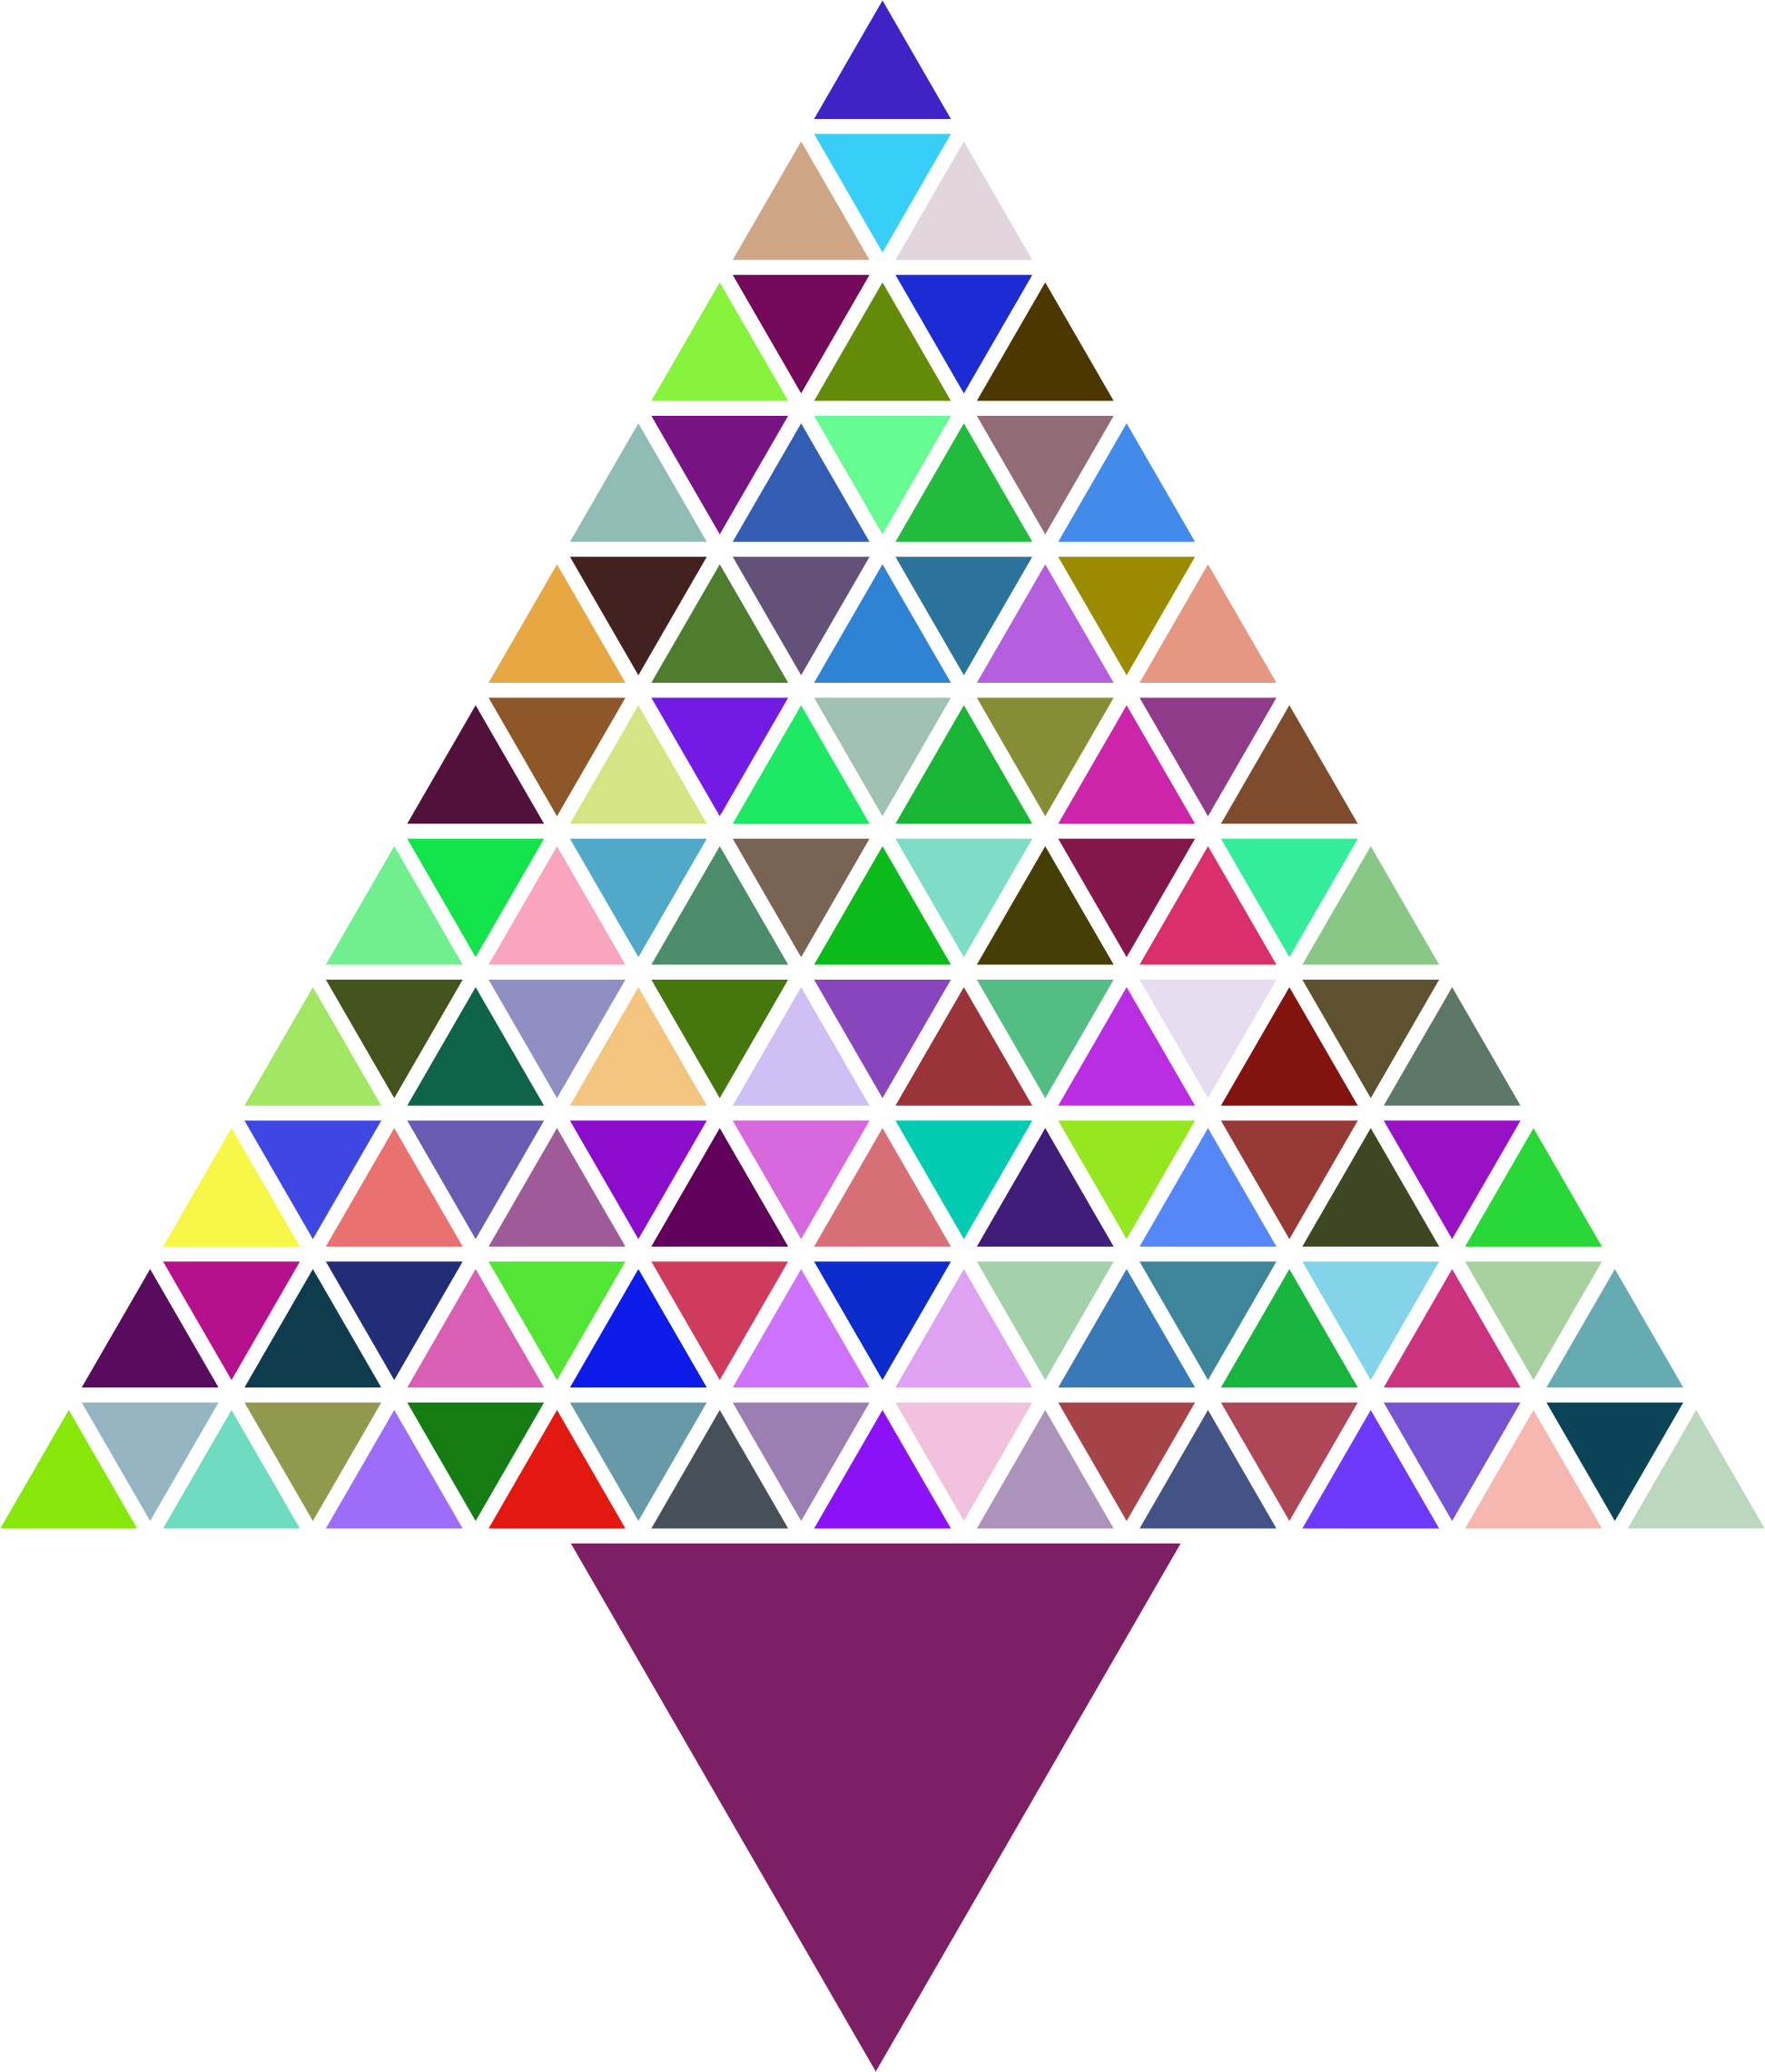 Prismatic Abstract Triangular Christmas Tree by GDJ